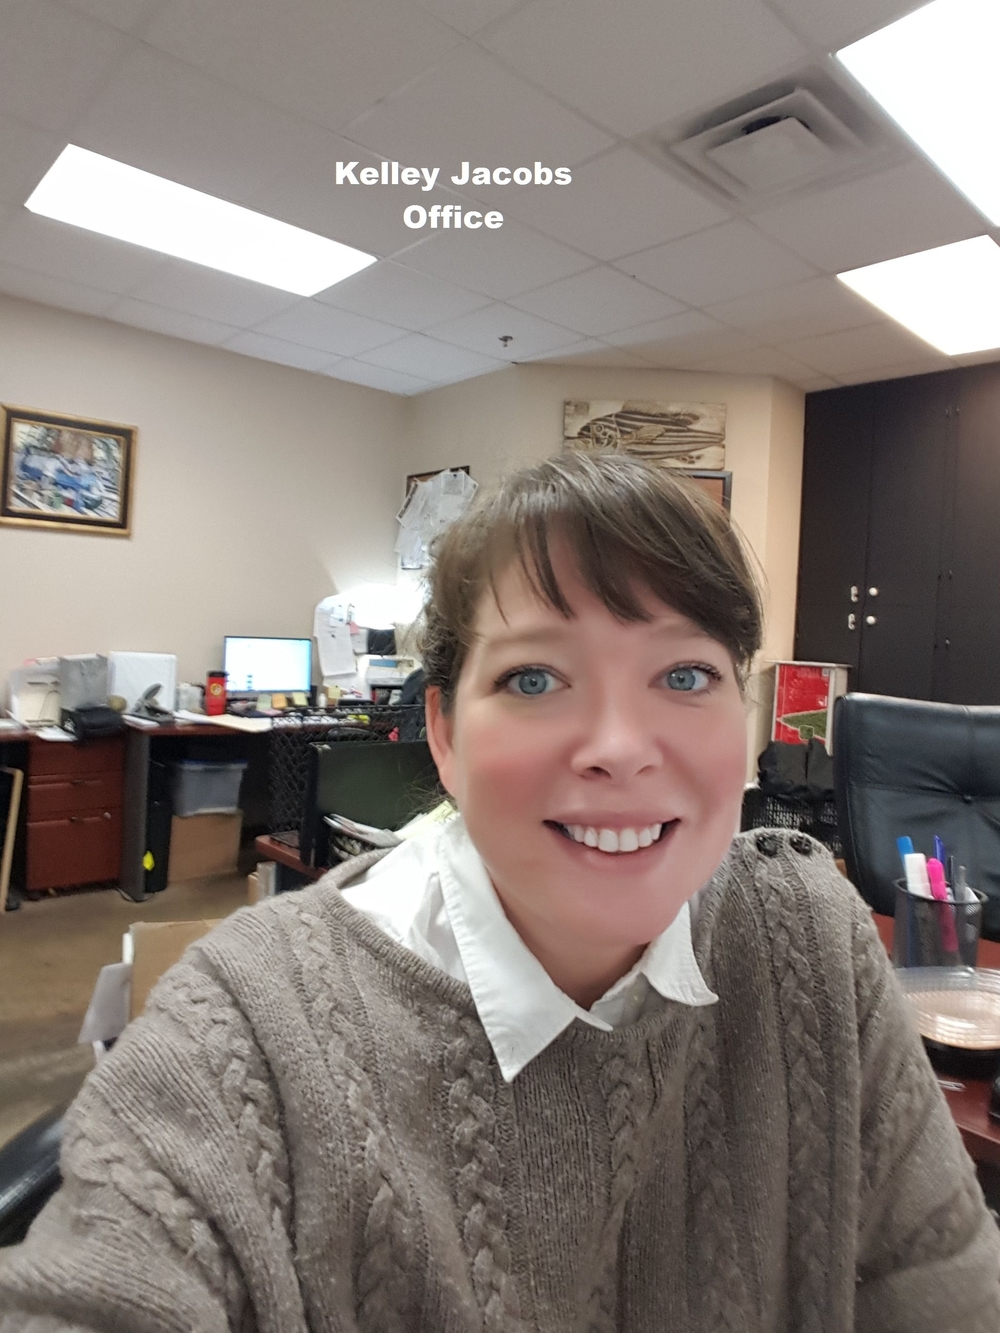 Kelley Jacobs - Office